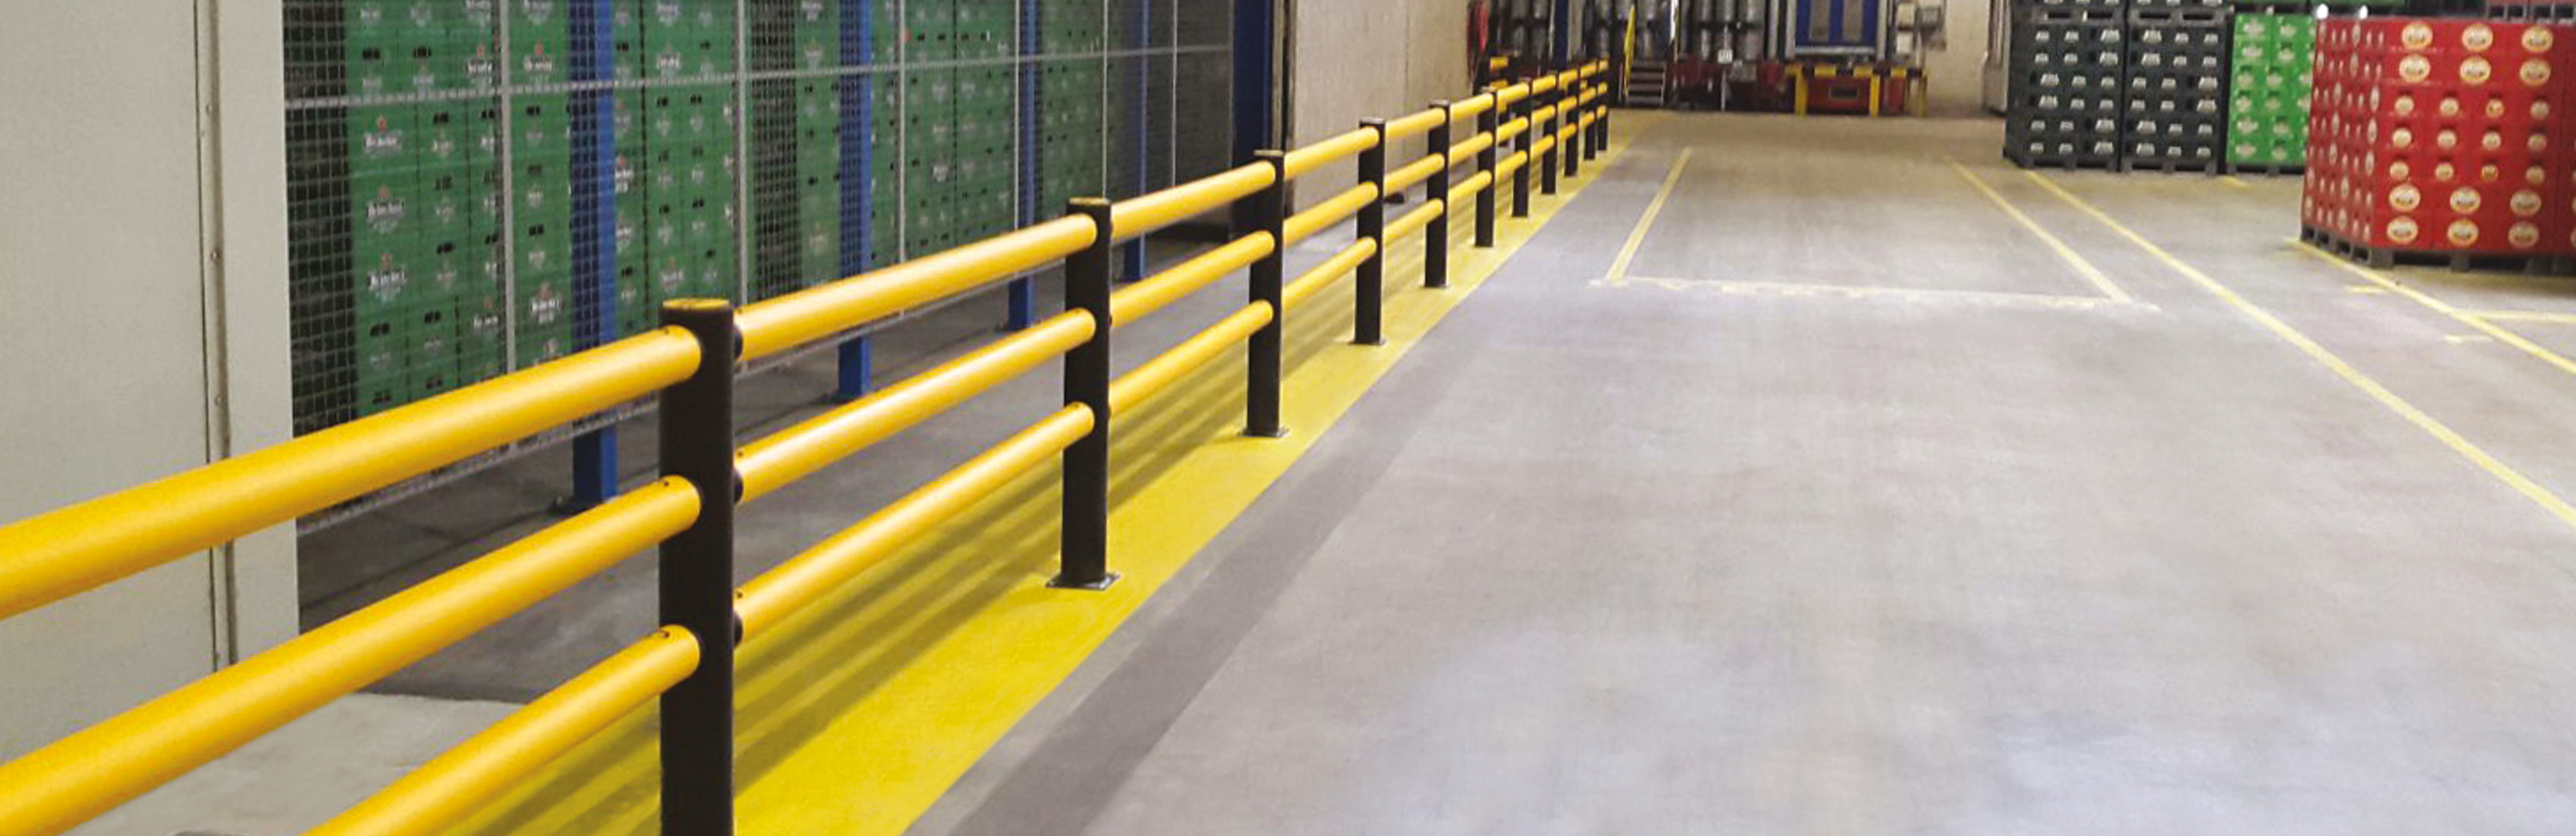 "<p>""I knew the minute I saw the A-SAFE barrier product at the Pro-Mat show that it would be a great fit in our new facility. We installed a small section of the A-SAFE barrier and instructed our industrial lift truck drivers to drive into the barrier. It was a 'smashing' success.""</p>"